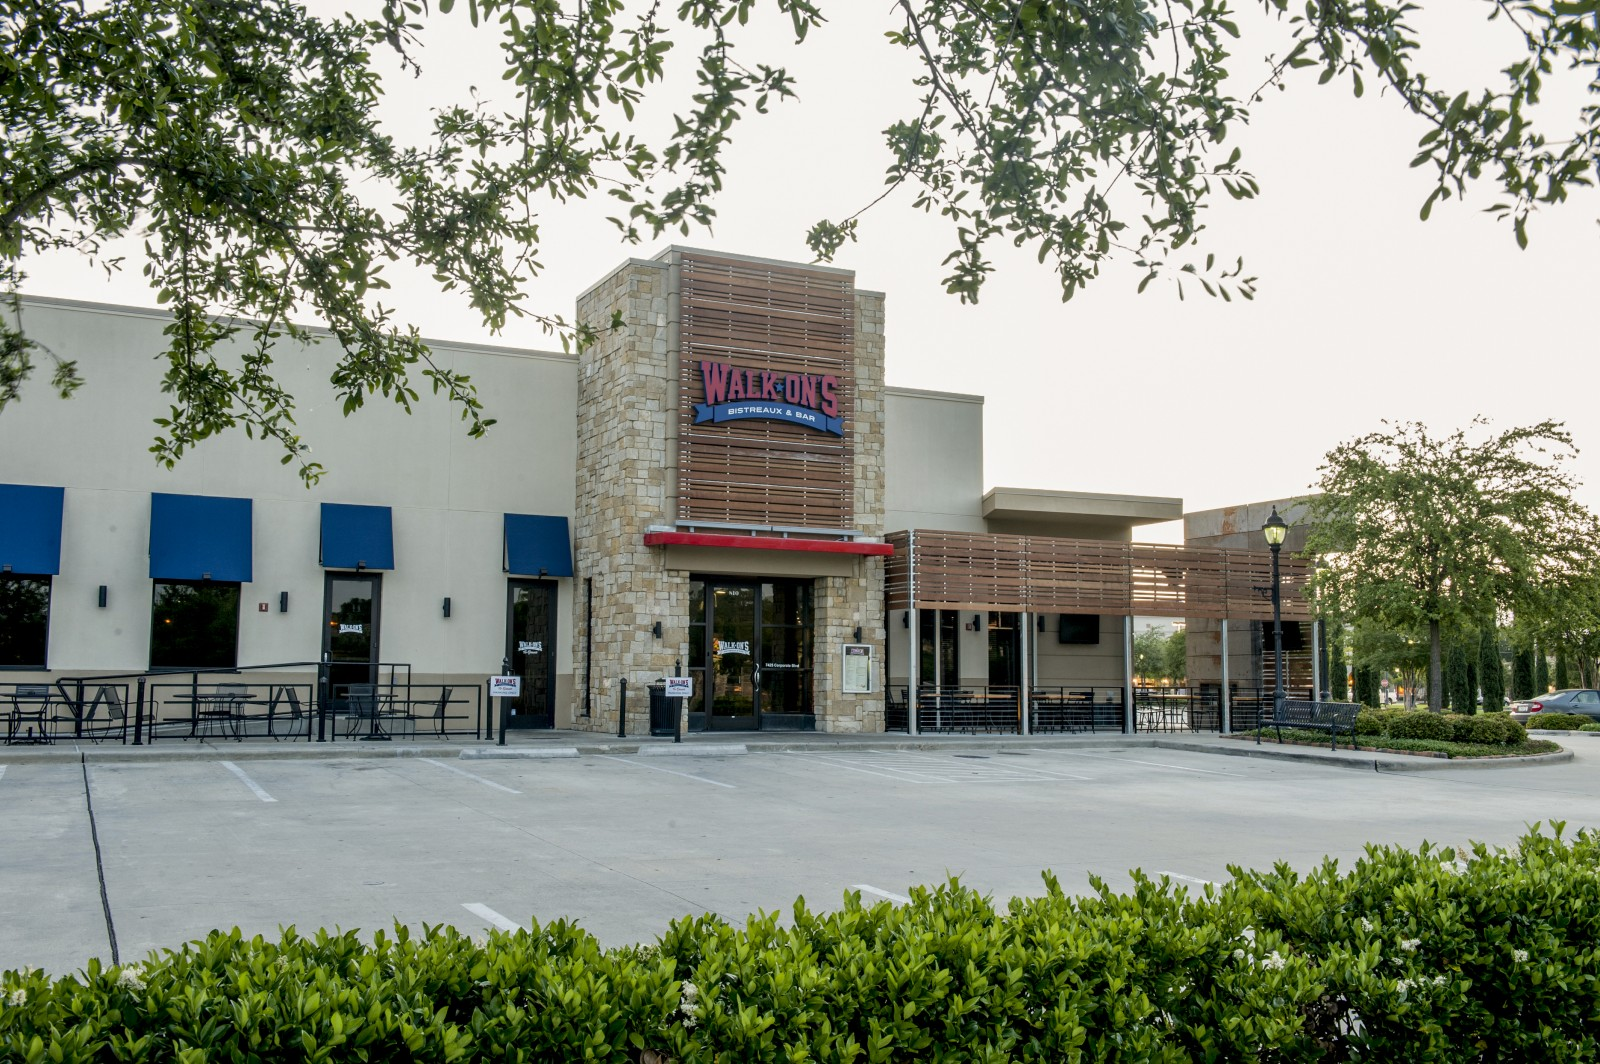 Walk-Ons-Towne-Center-Front-1600x1064.jpg